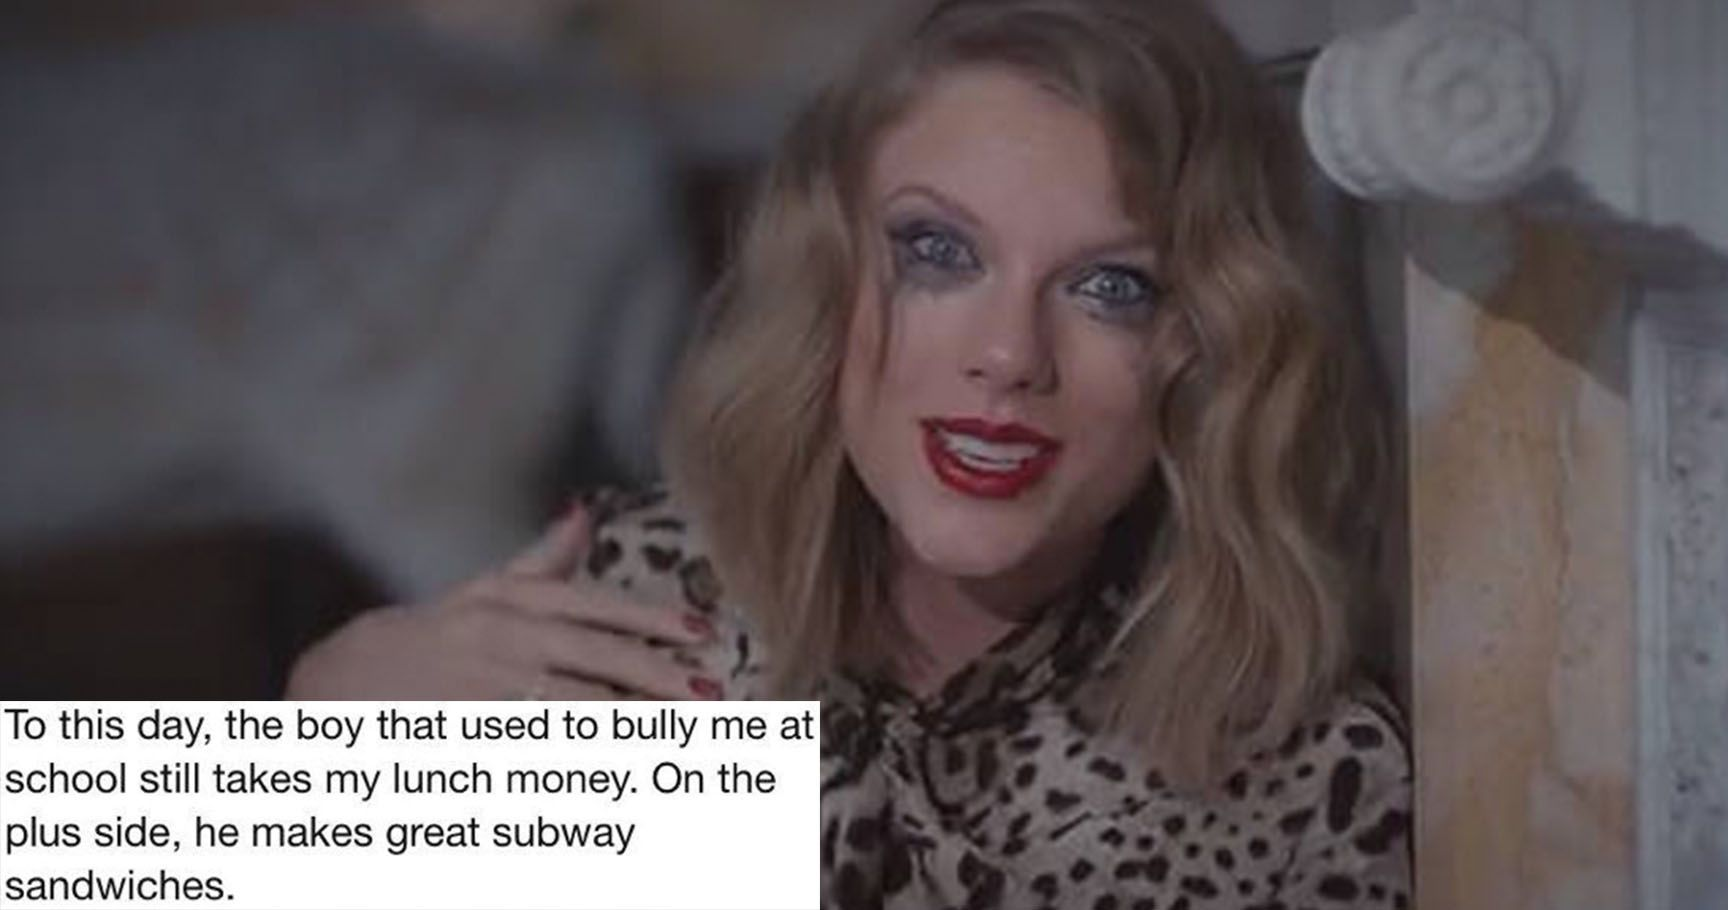 15 Hilariously Savage Revenge Stories Where Bullies Got What They Deserved